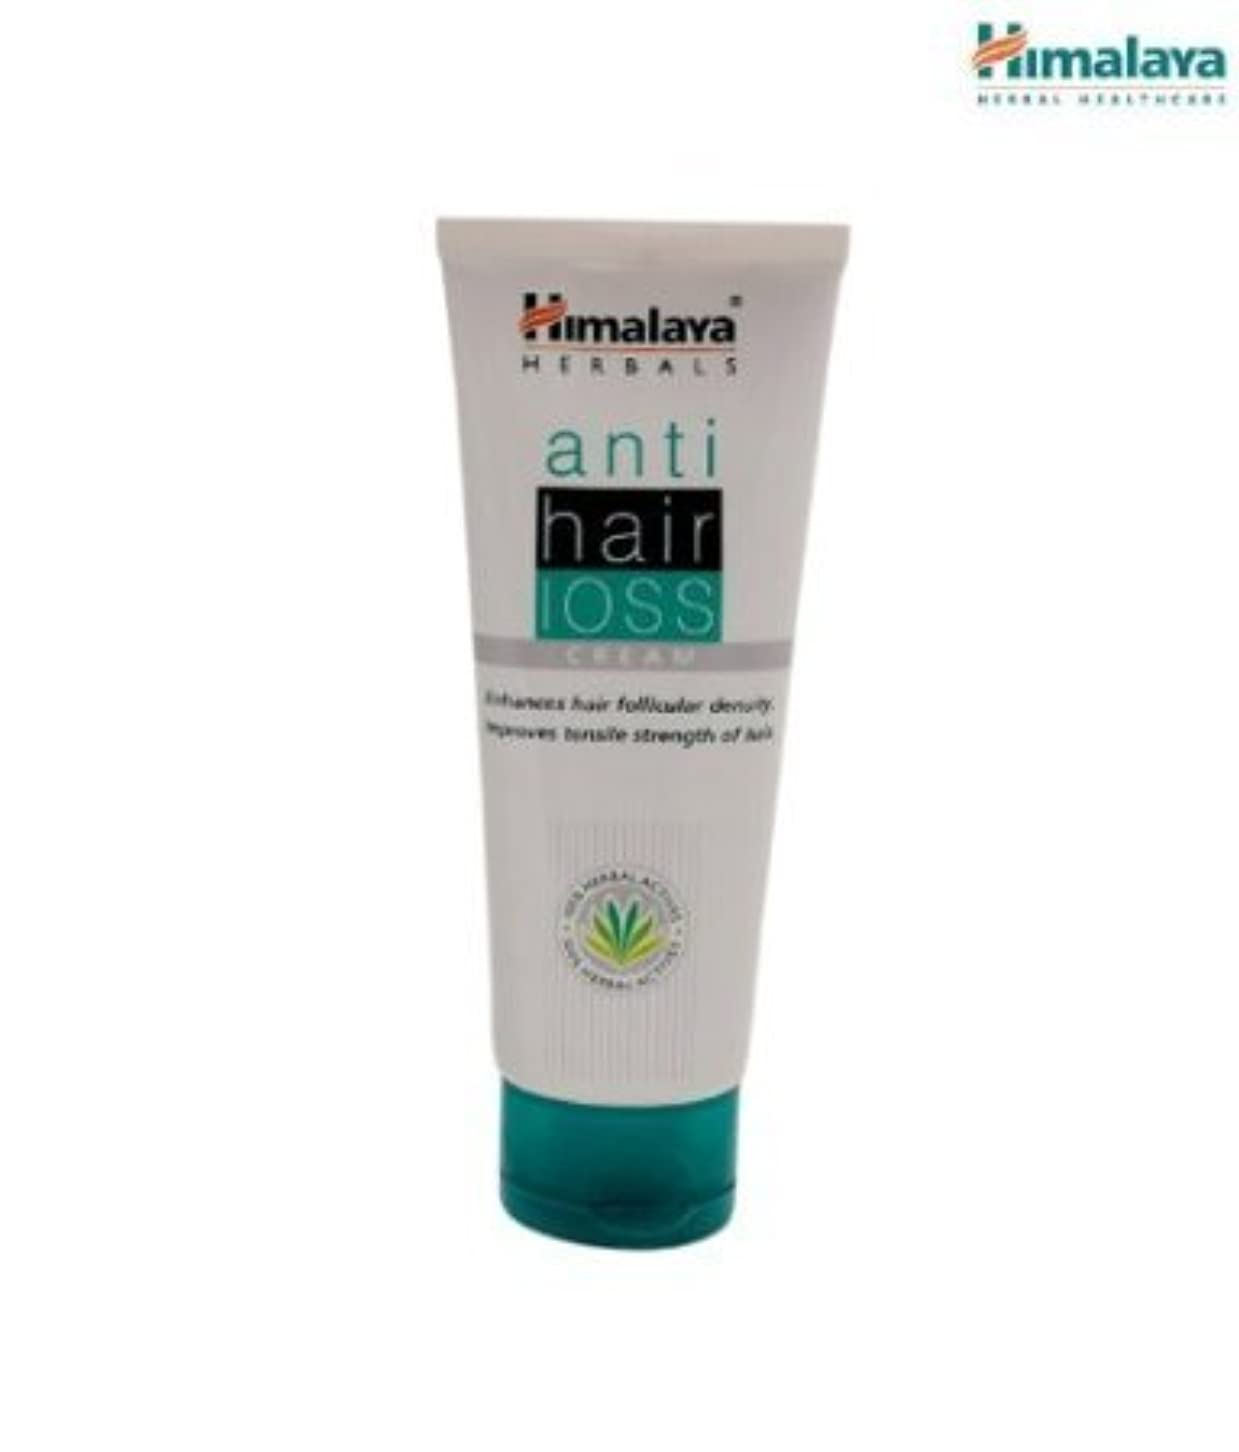 受益者乞食ワードローブHimalaya Anti Hair Loss Cream - 100ml